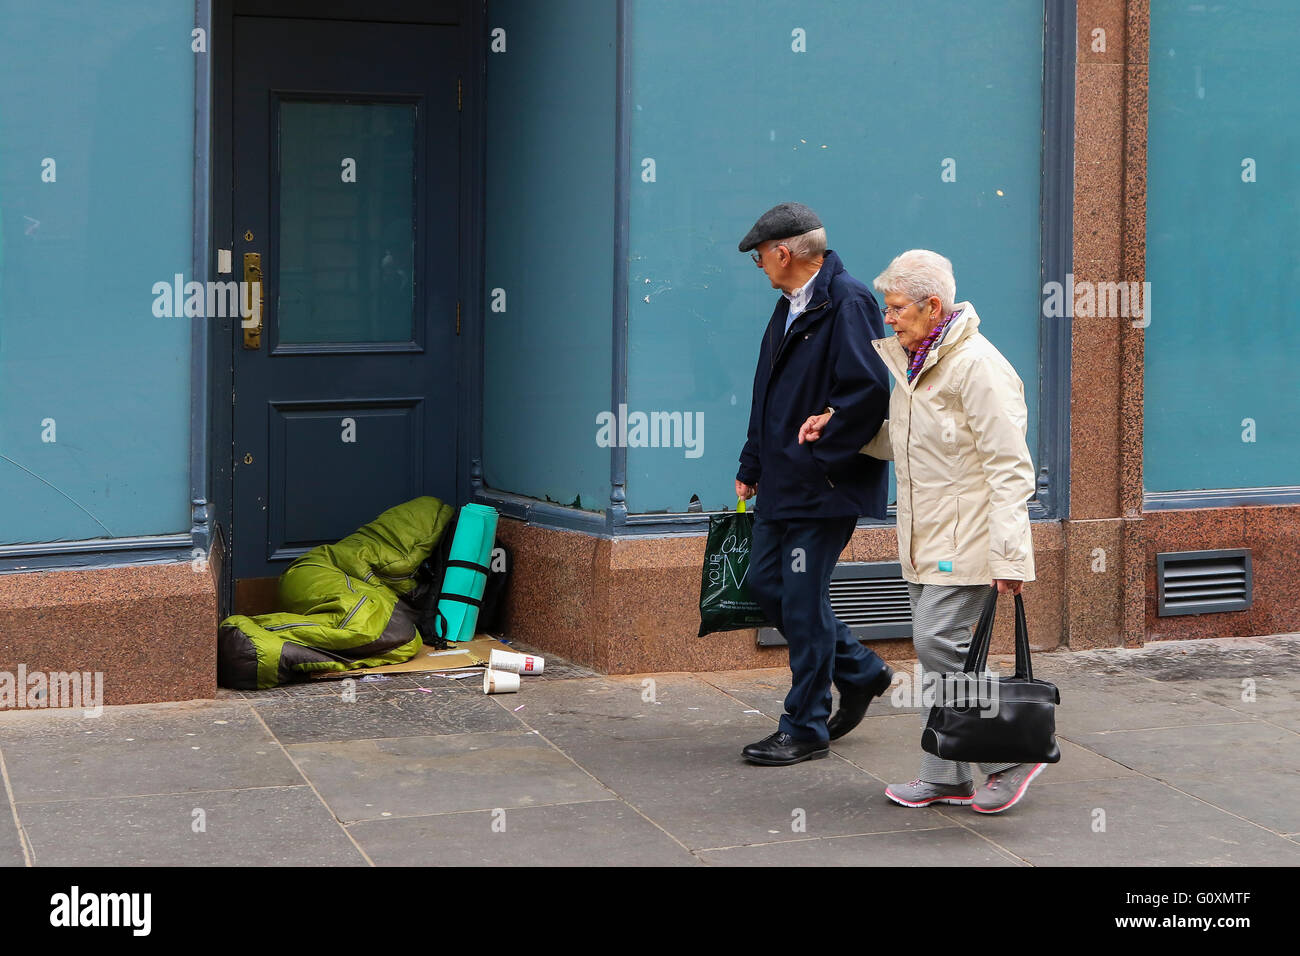 Man and woman walking past someone sleeping rough in a shop doorway, Glasgow,  city, Scotland, UK - Stock Image